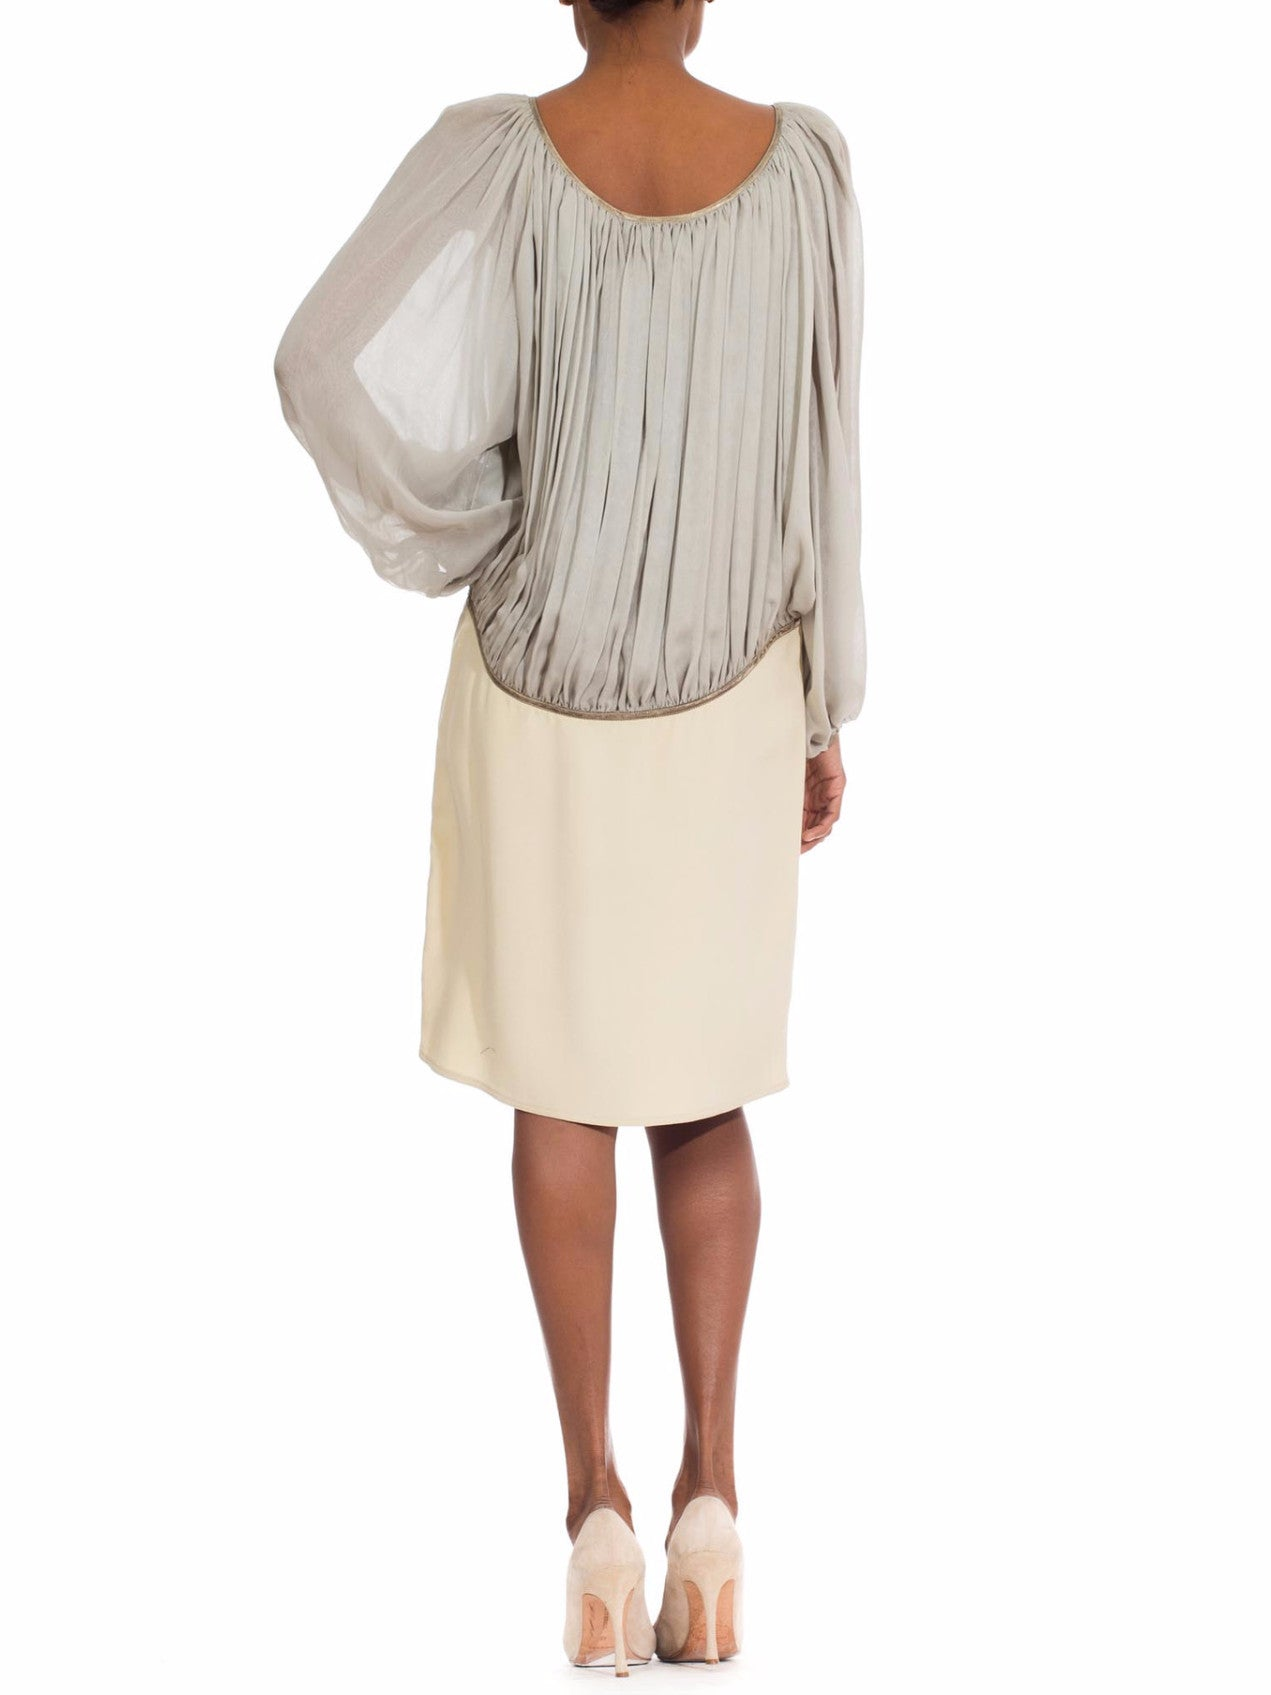 1980S GEOFFREY BEENE Cream & Grey Silk Chiffon Crepe Dress With Metallic Details